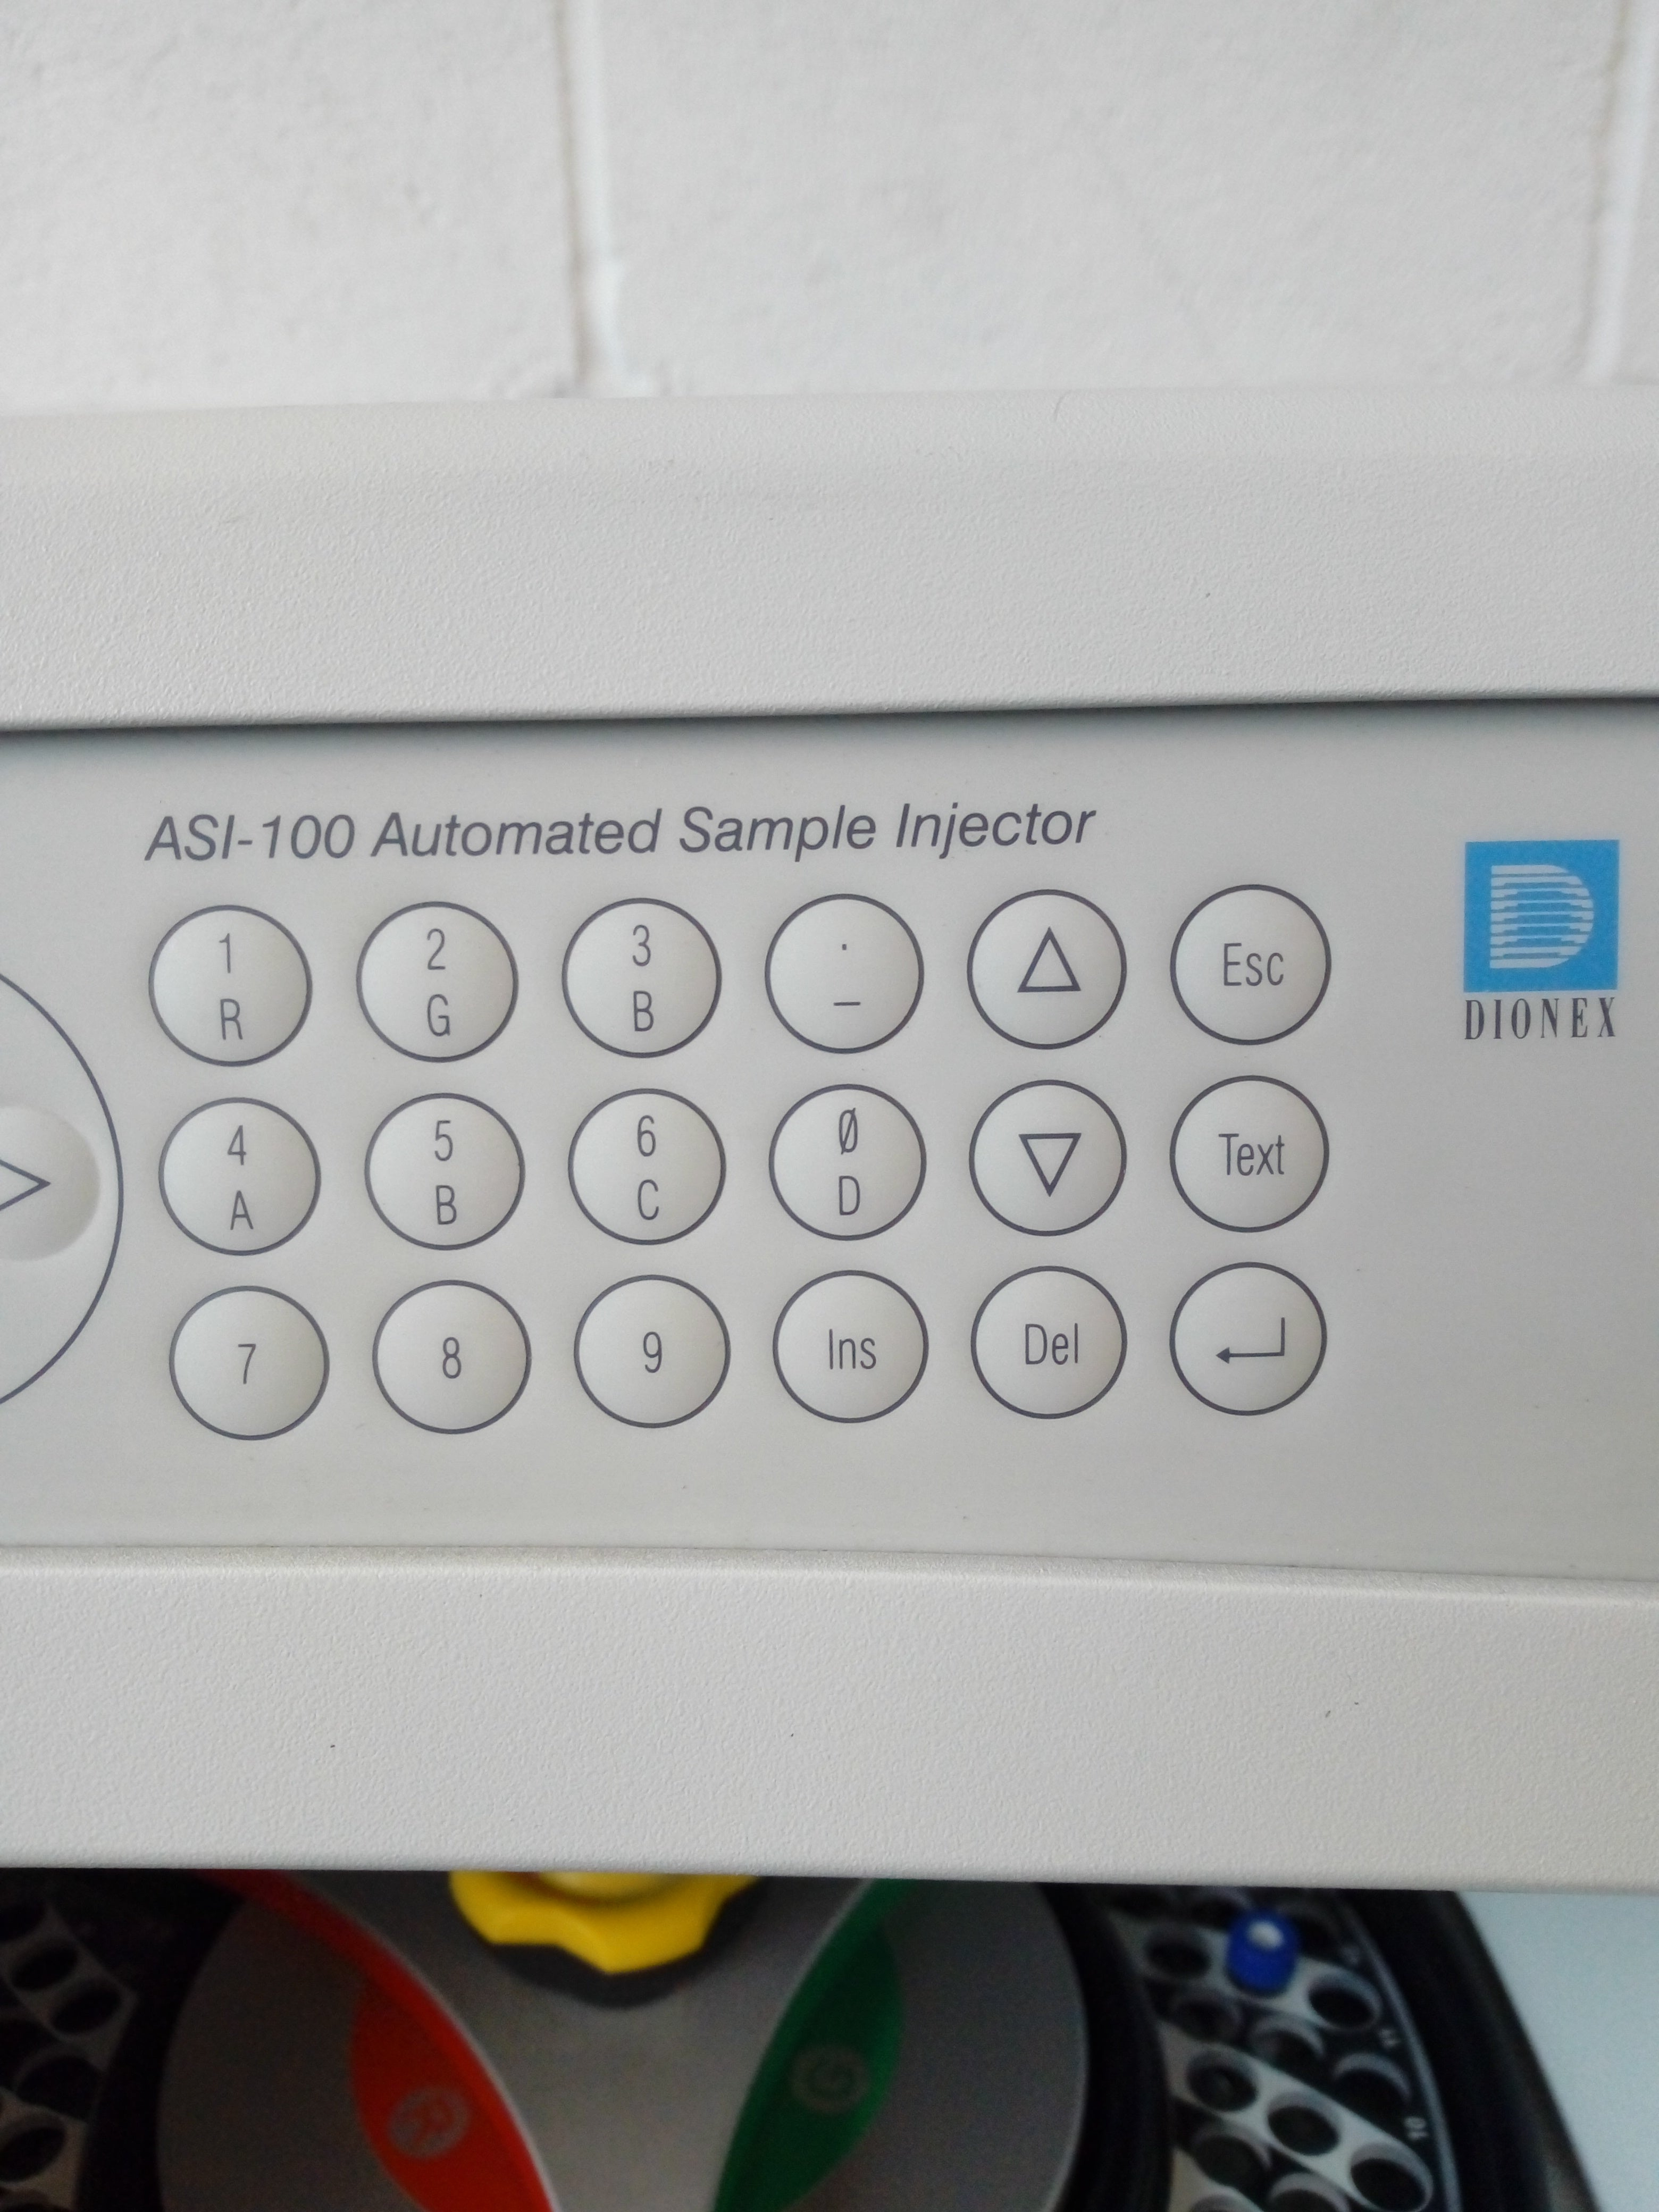 Dionex - ASI 100 Automated Sample Injector